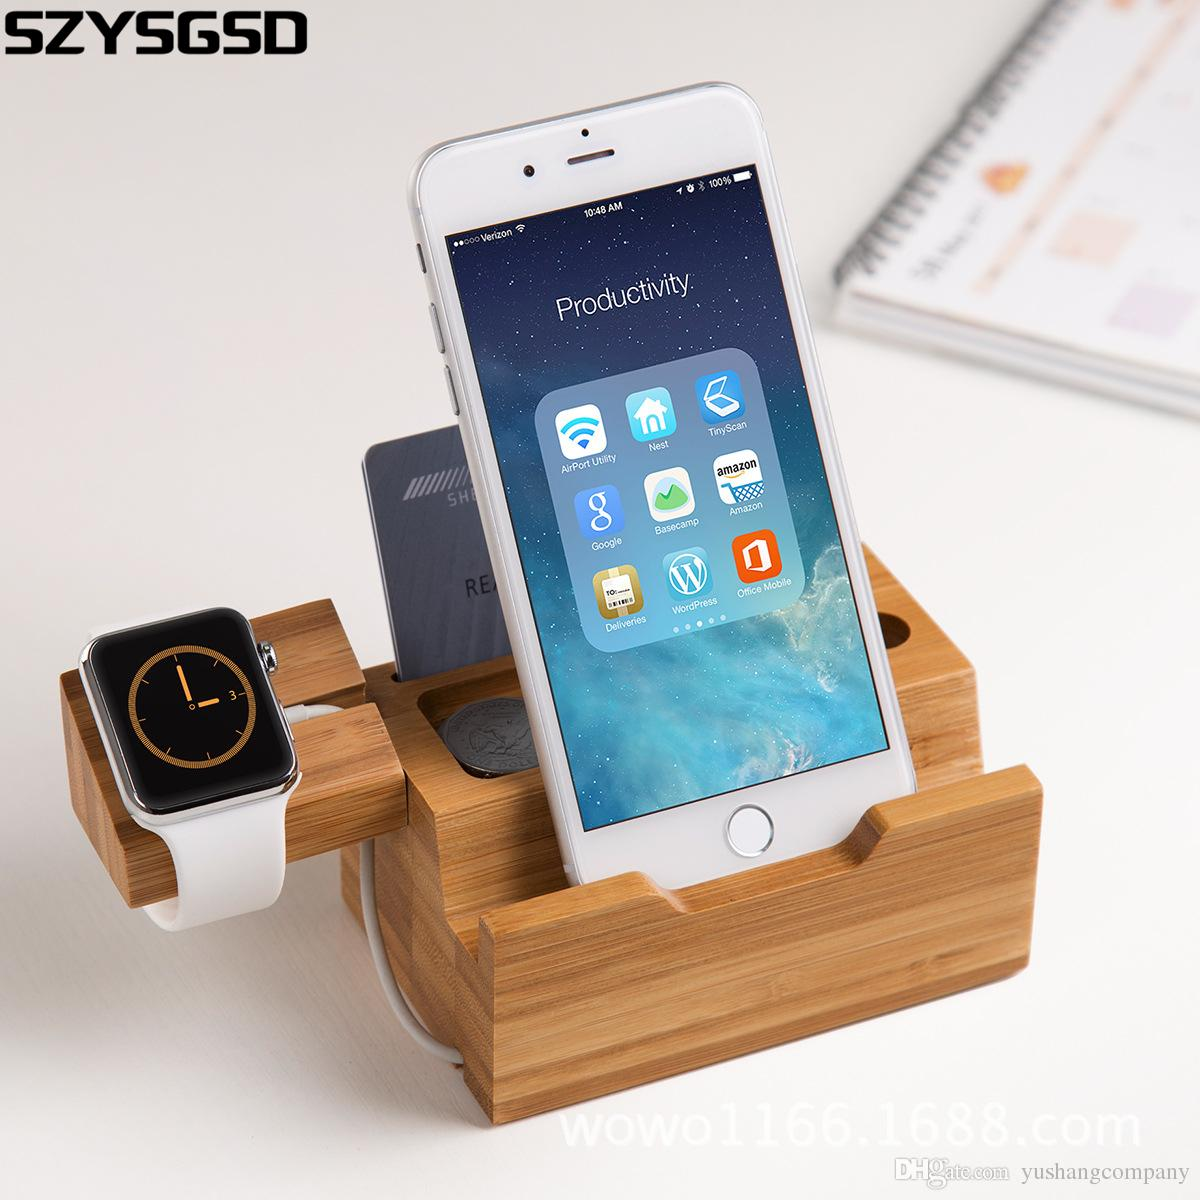 Wood bamboo charging dock charger station bracket cradle stand holder for iwatch for apple iphone 5 5s 6 6 plus 7 plus